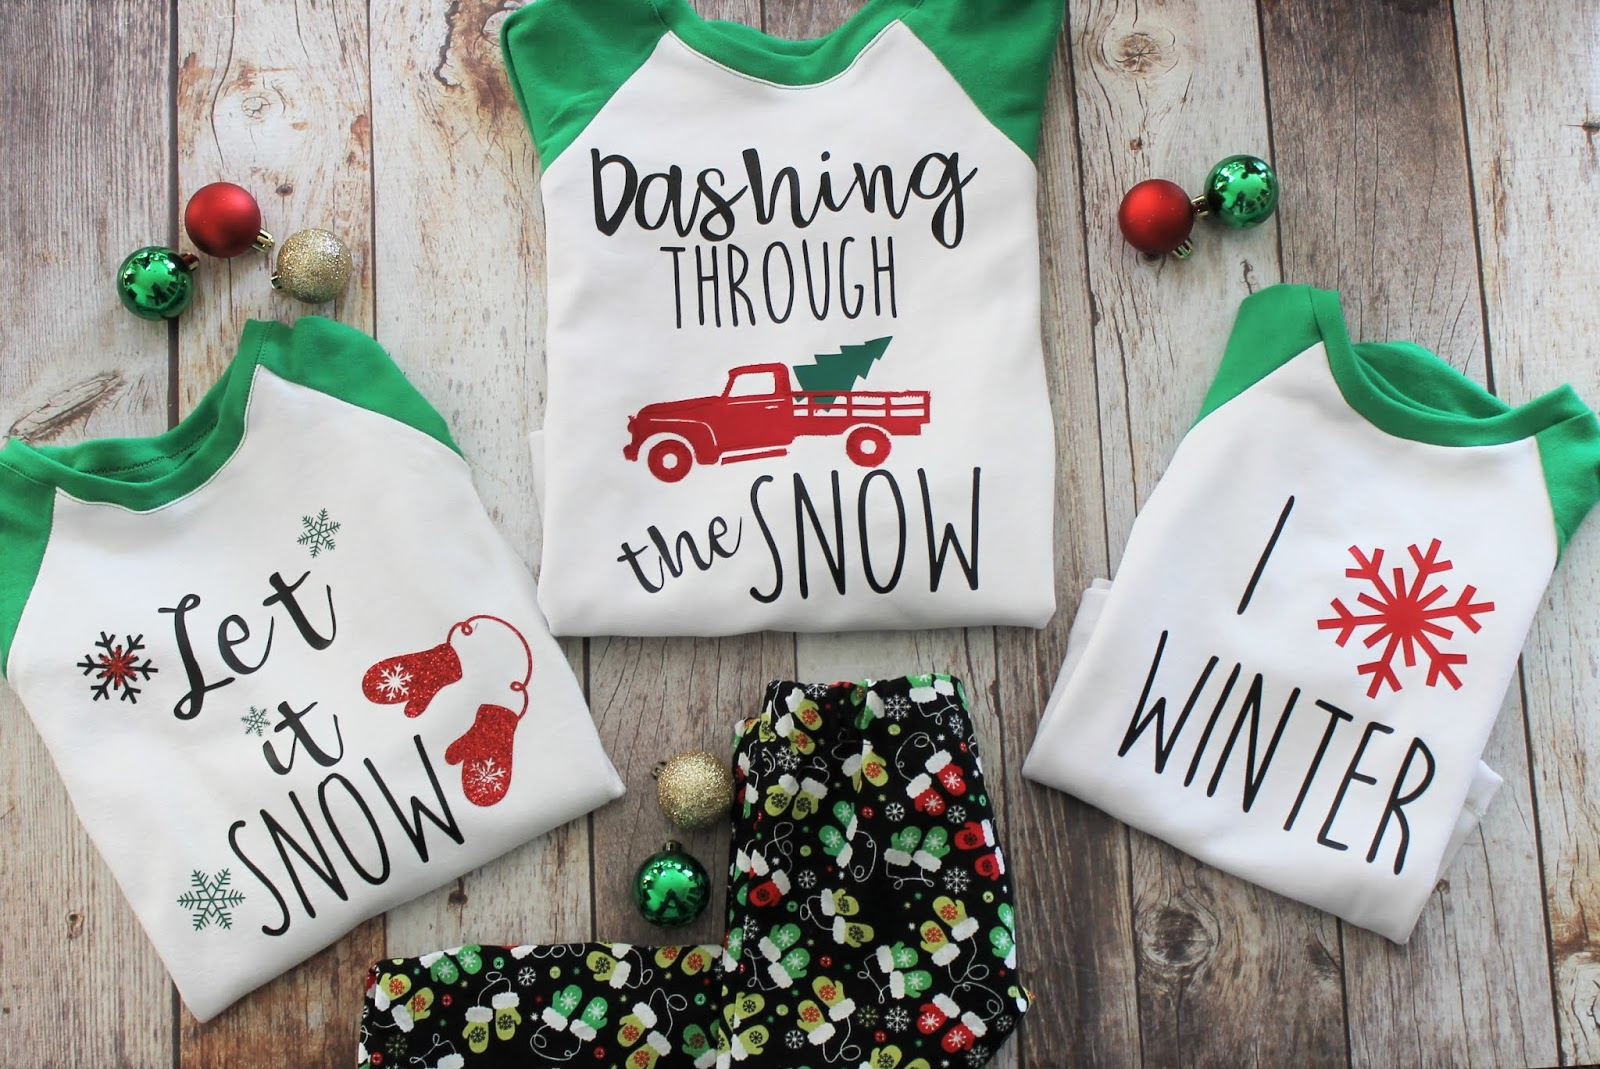 e19da4550c ... little something so I designed these festive Christmas SVG files for  Cricut. Today I wanted to show you how EASY it is to customize your  Christmas pjs.